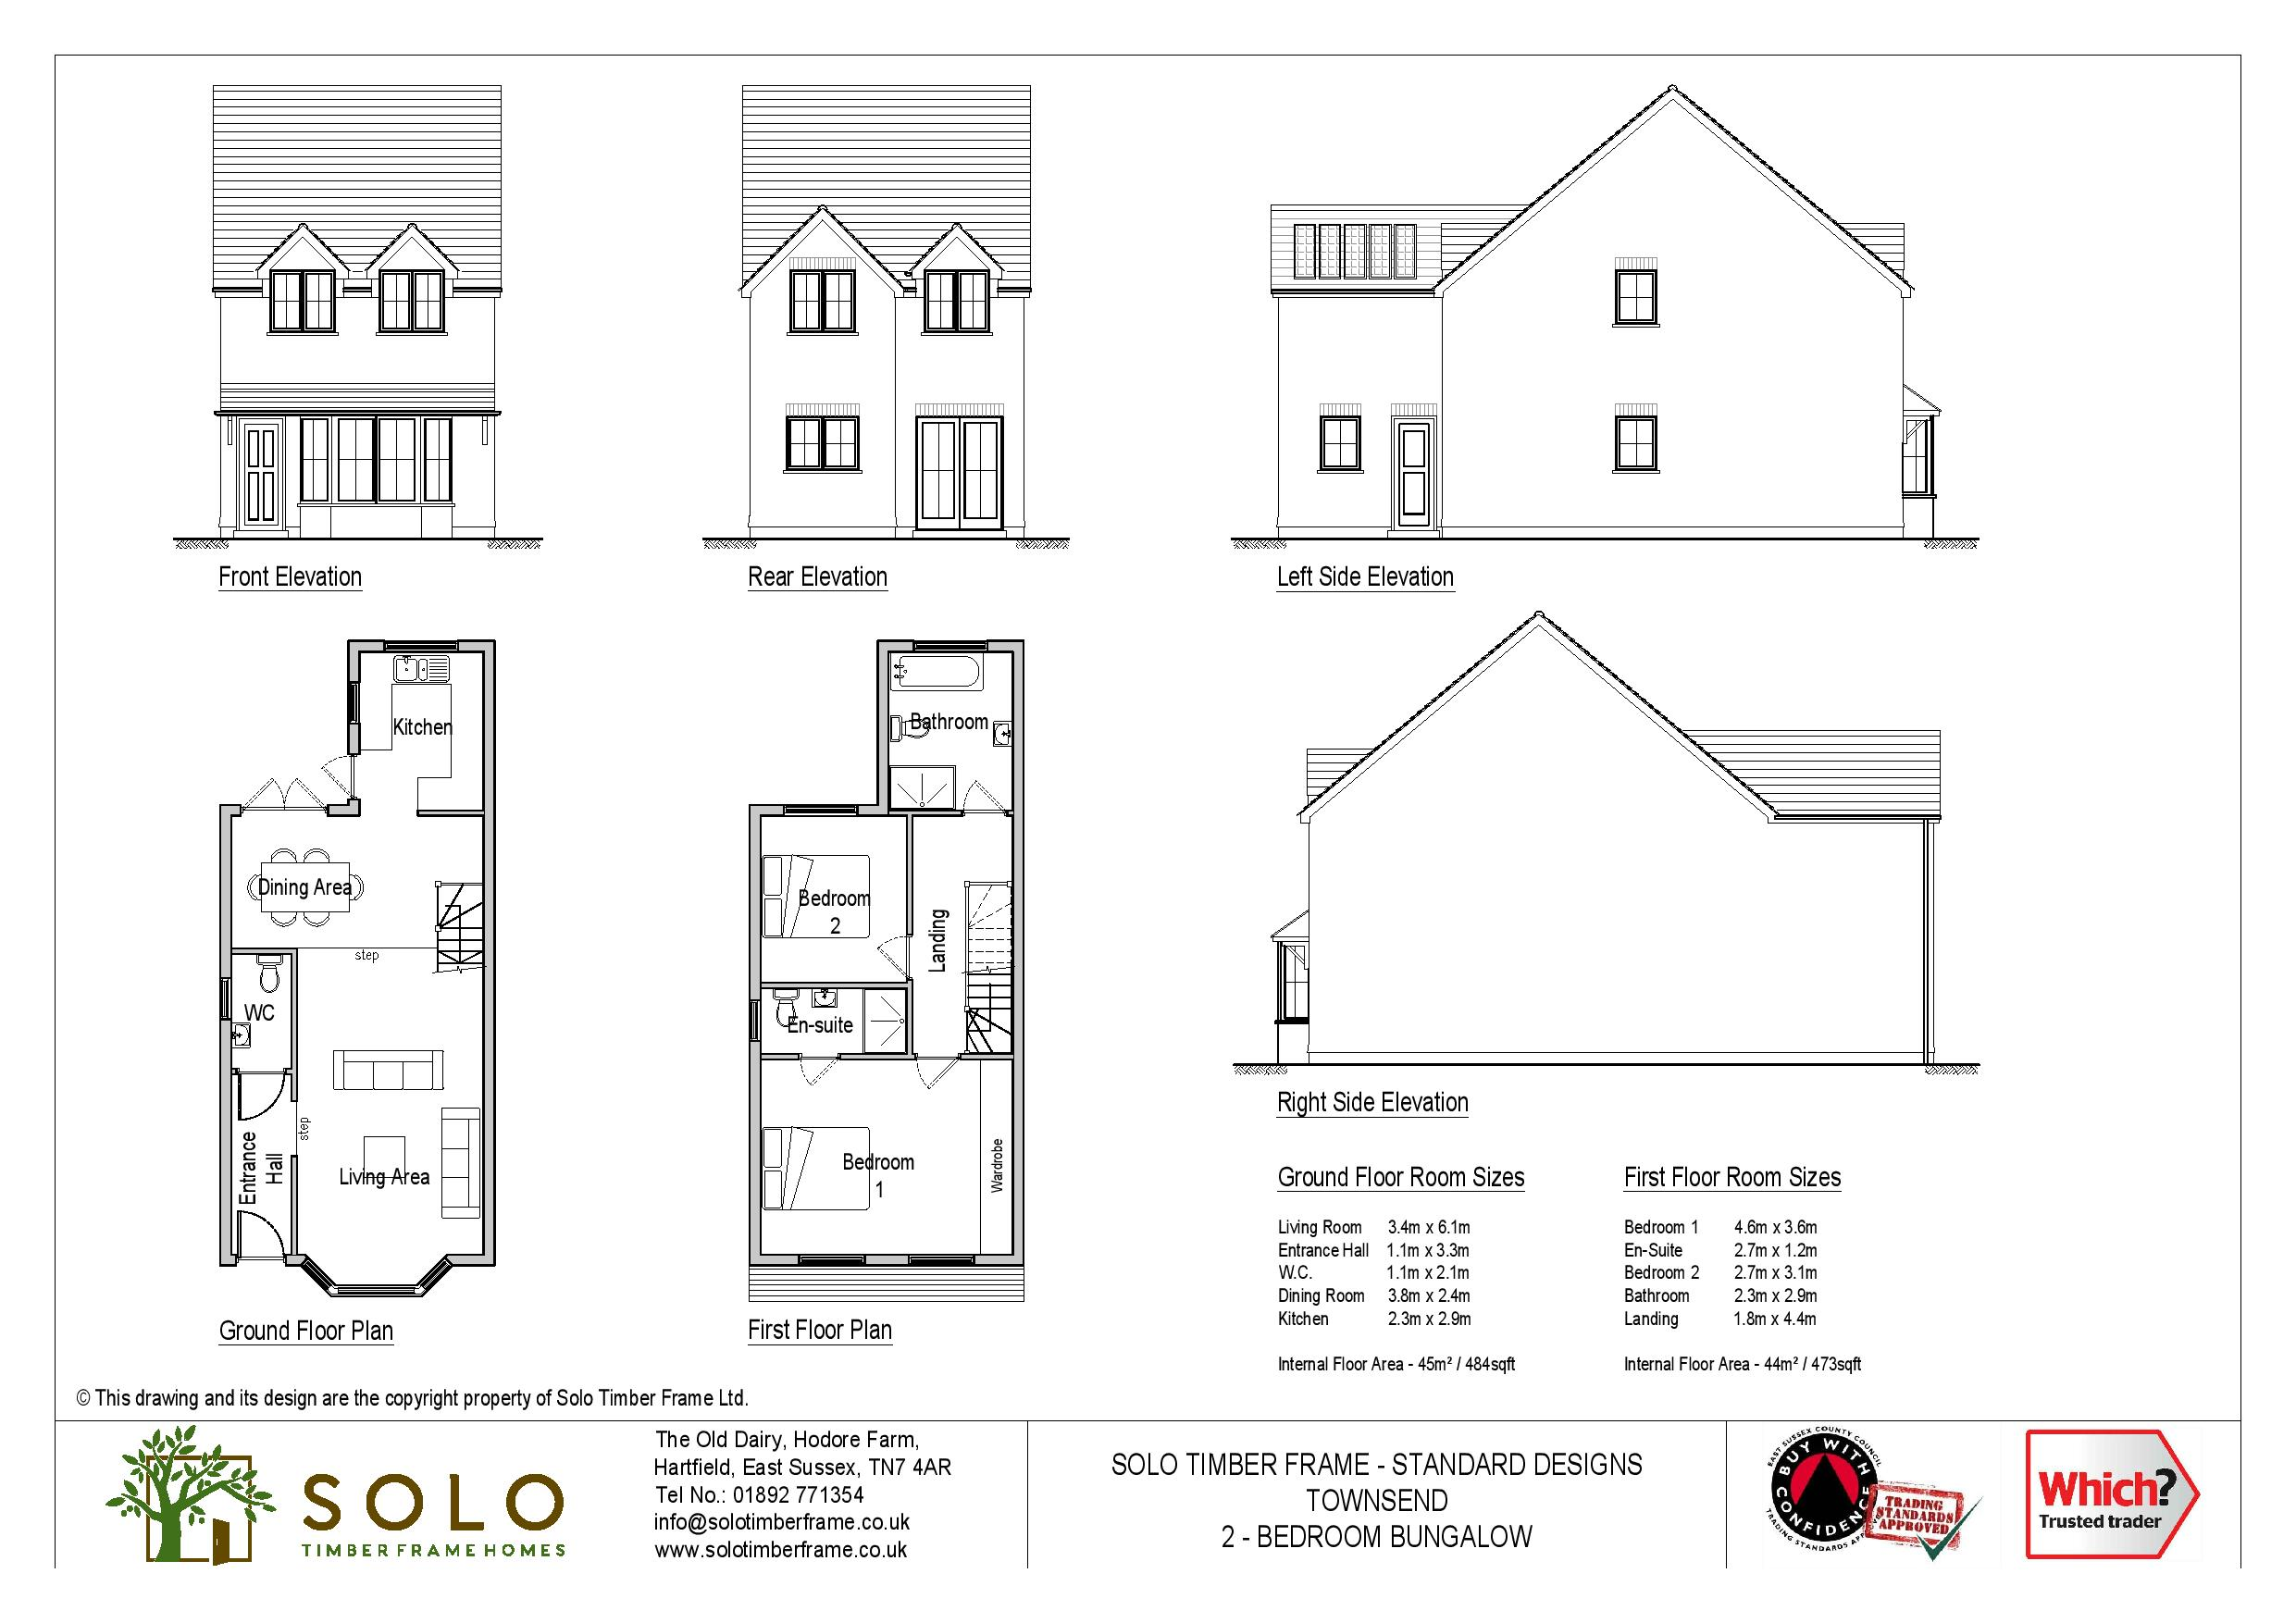 Townsend 3 – 3 Bedroom House Design